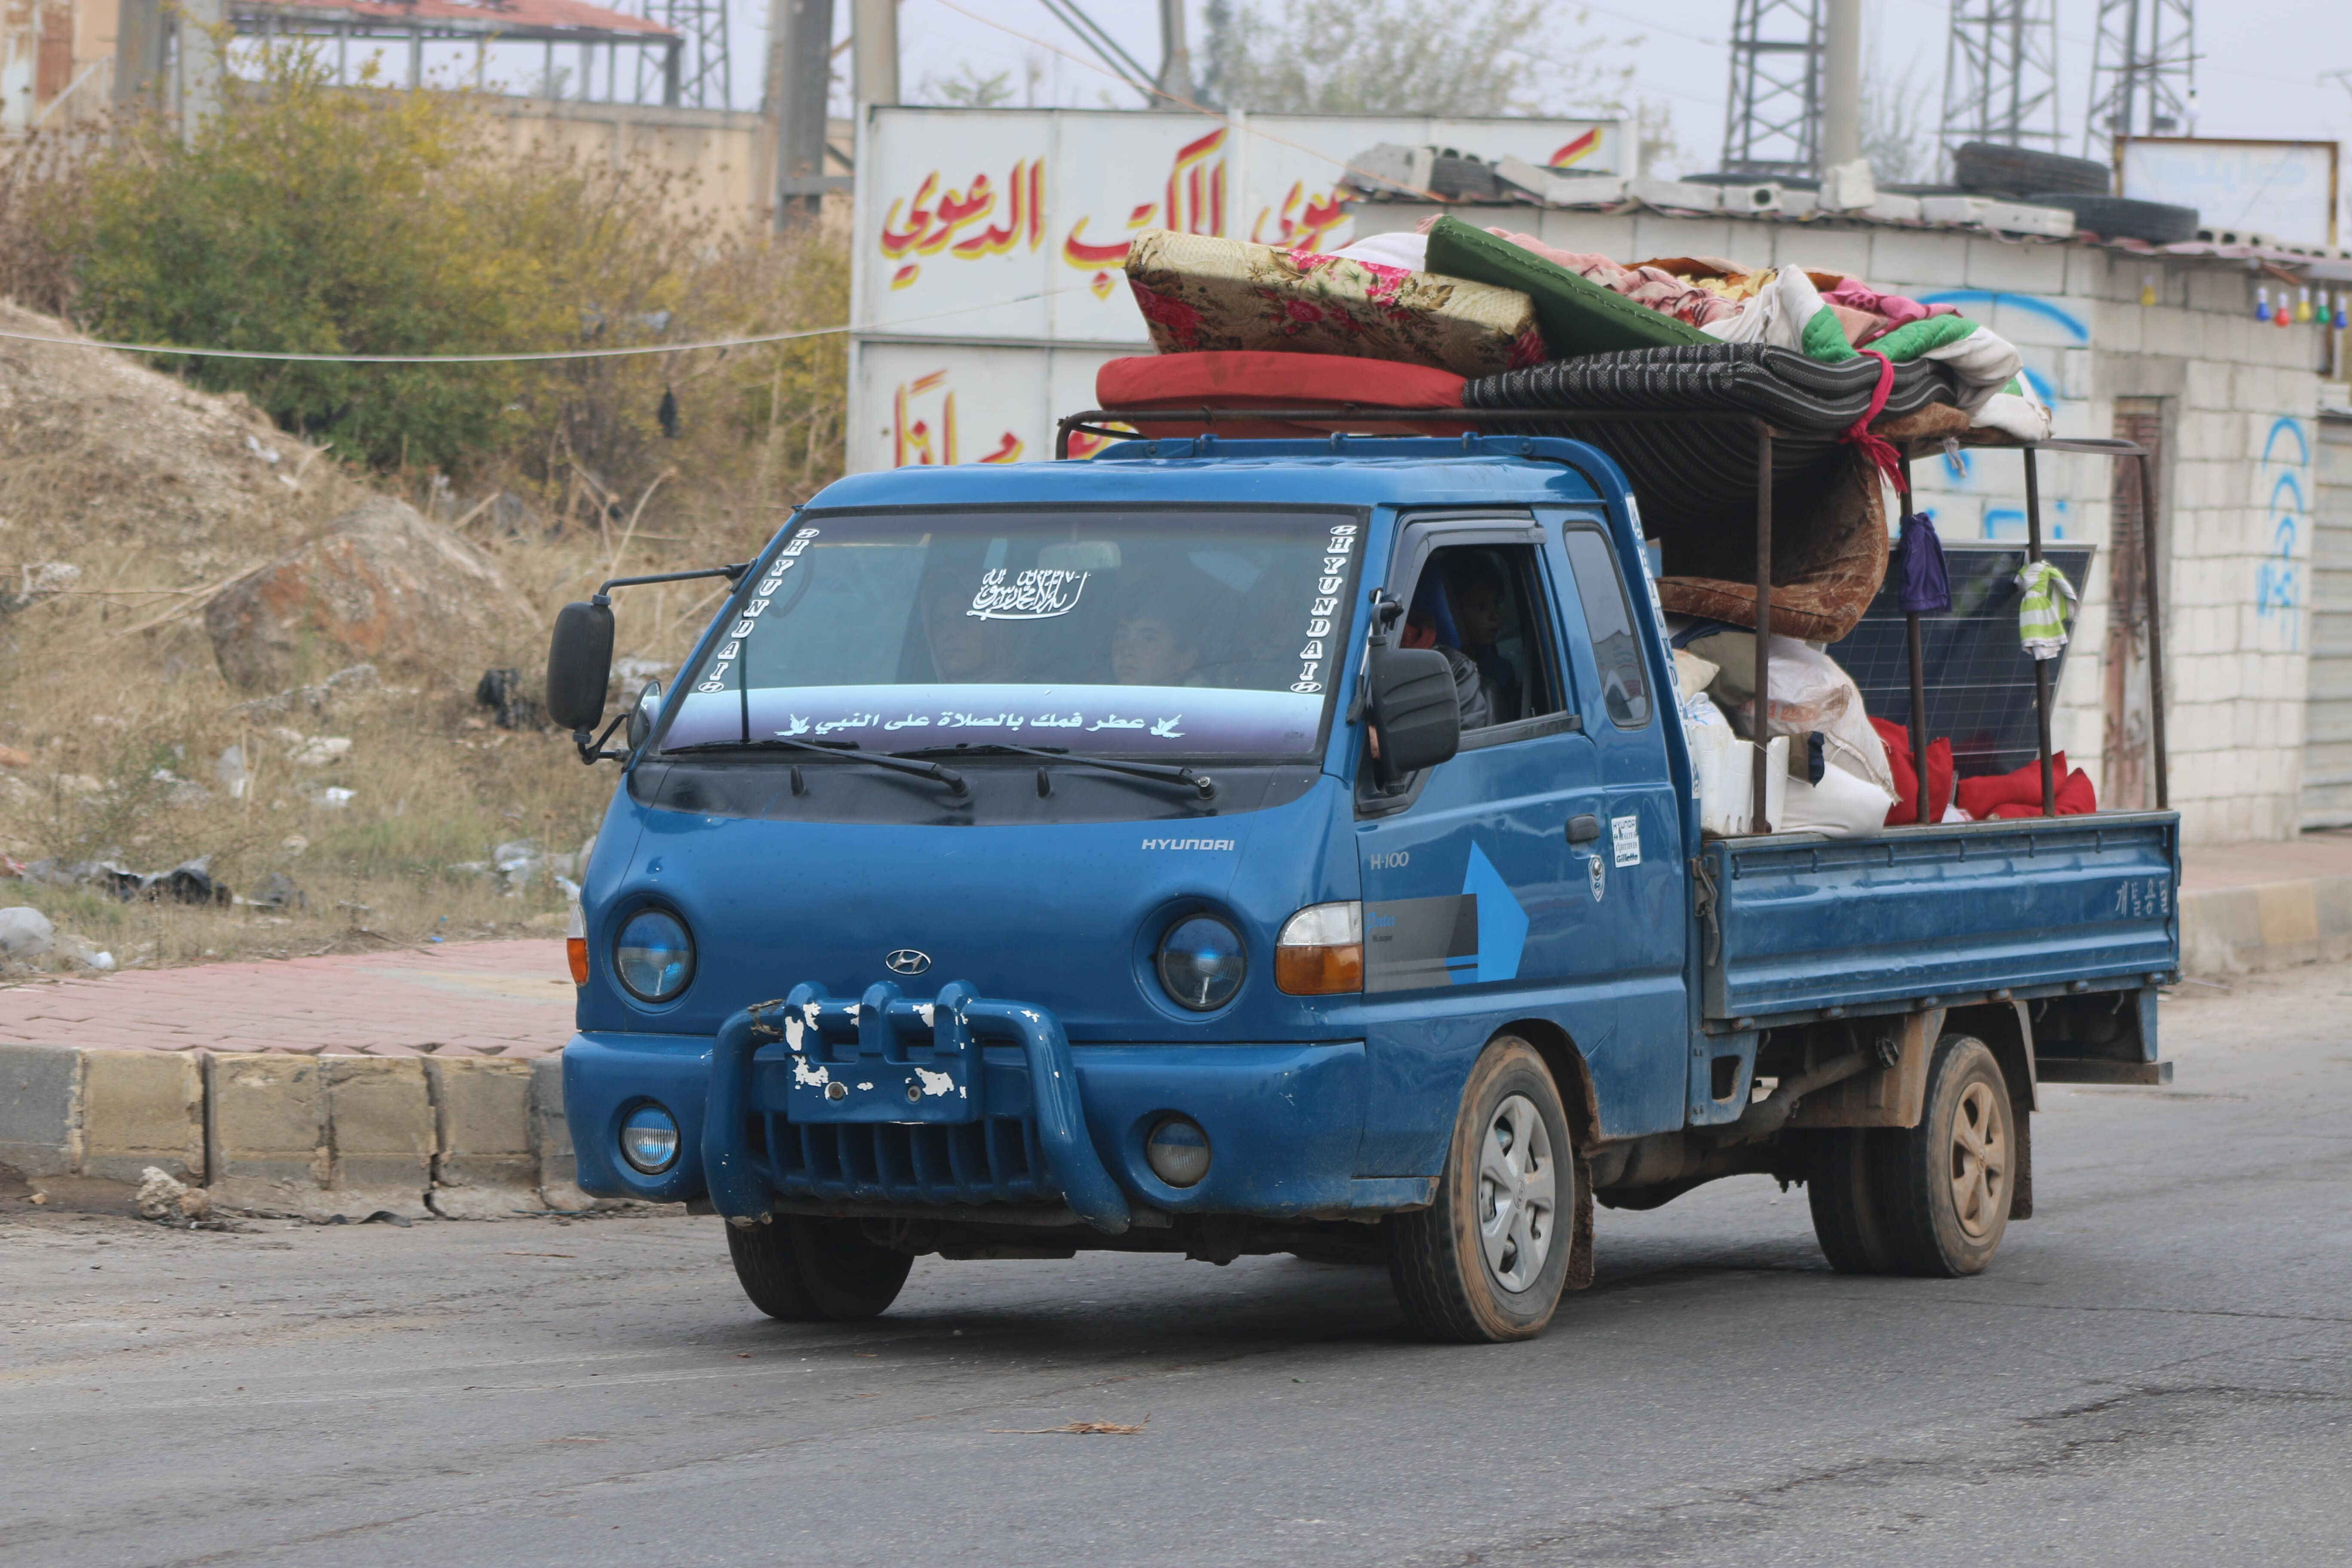 Thousands of civilians have fled Idlib since the end of last week